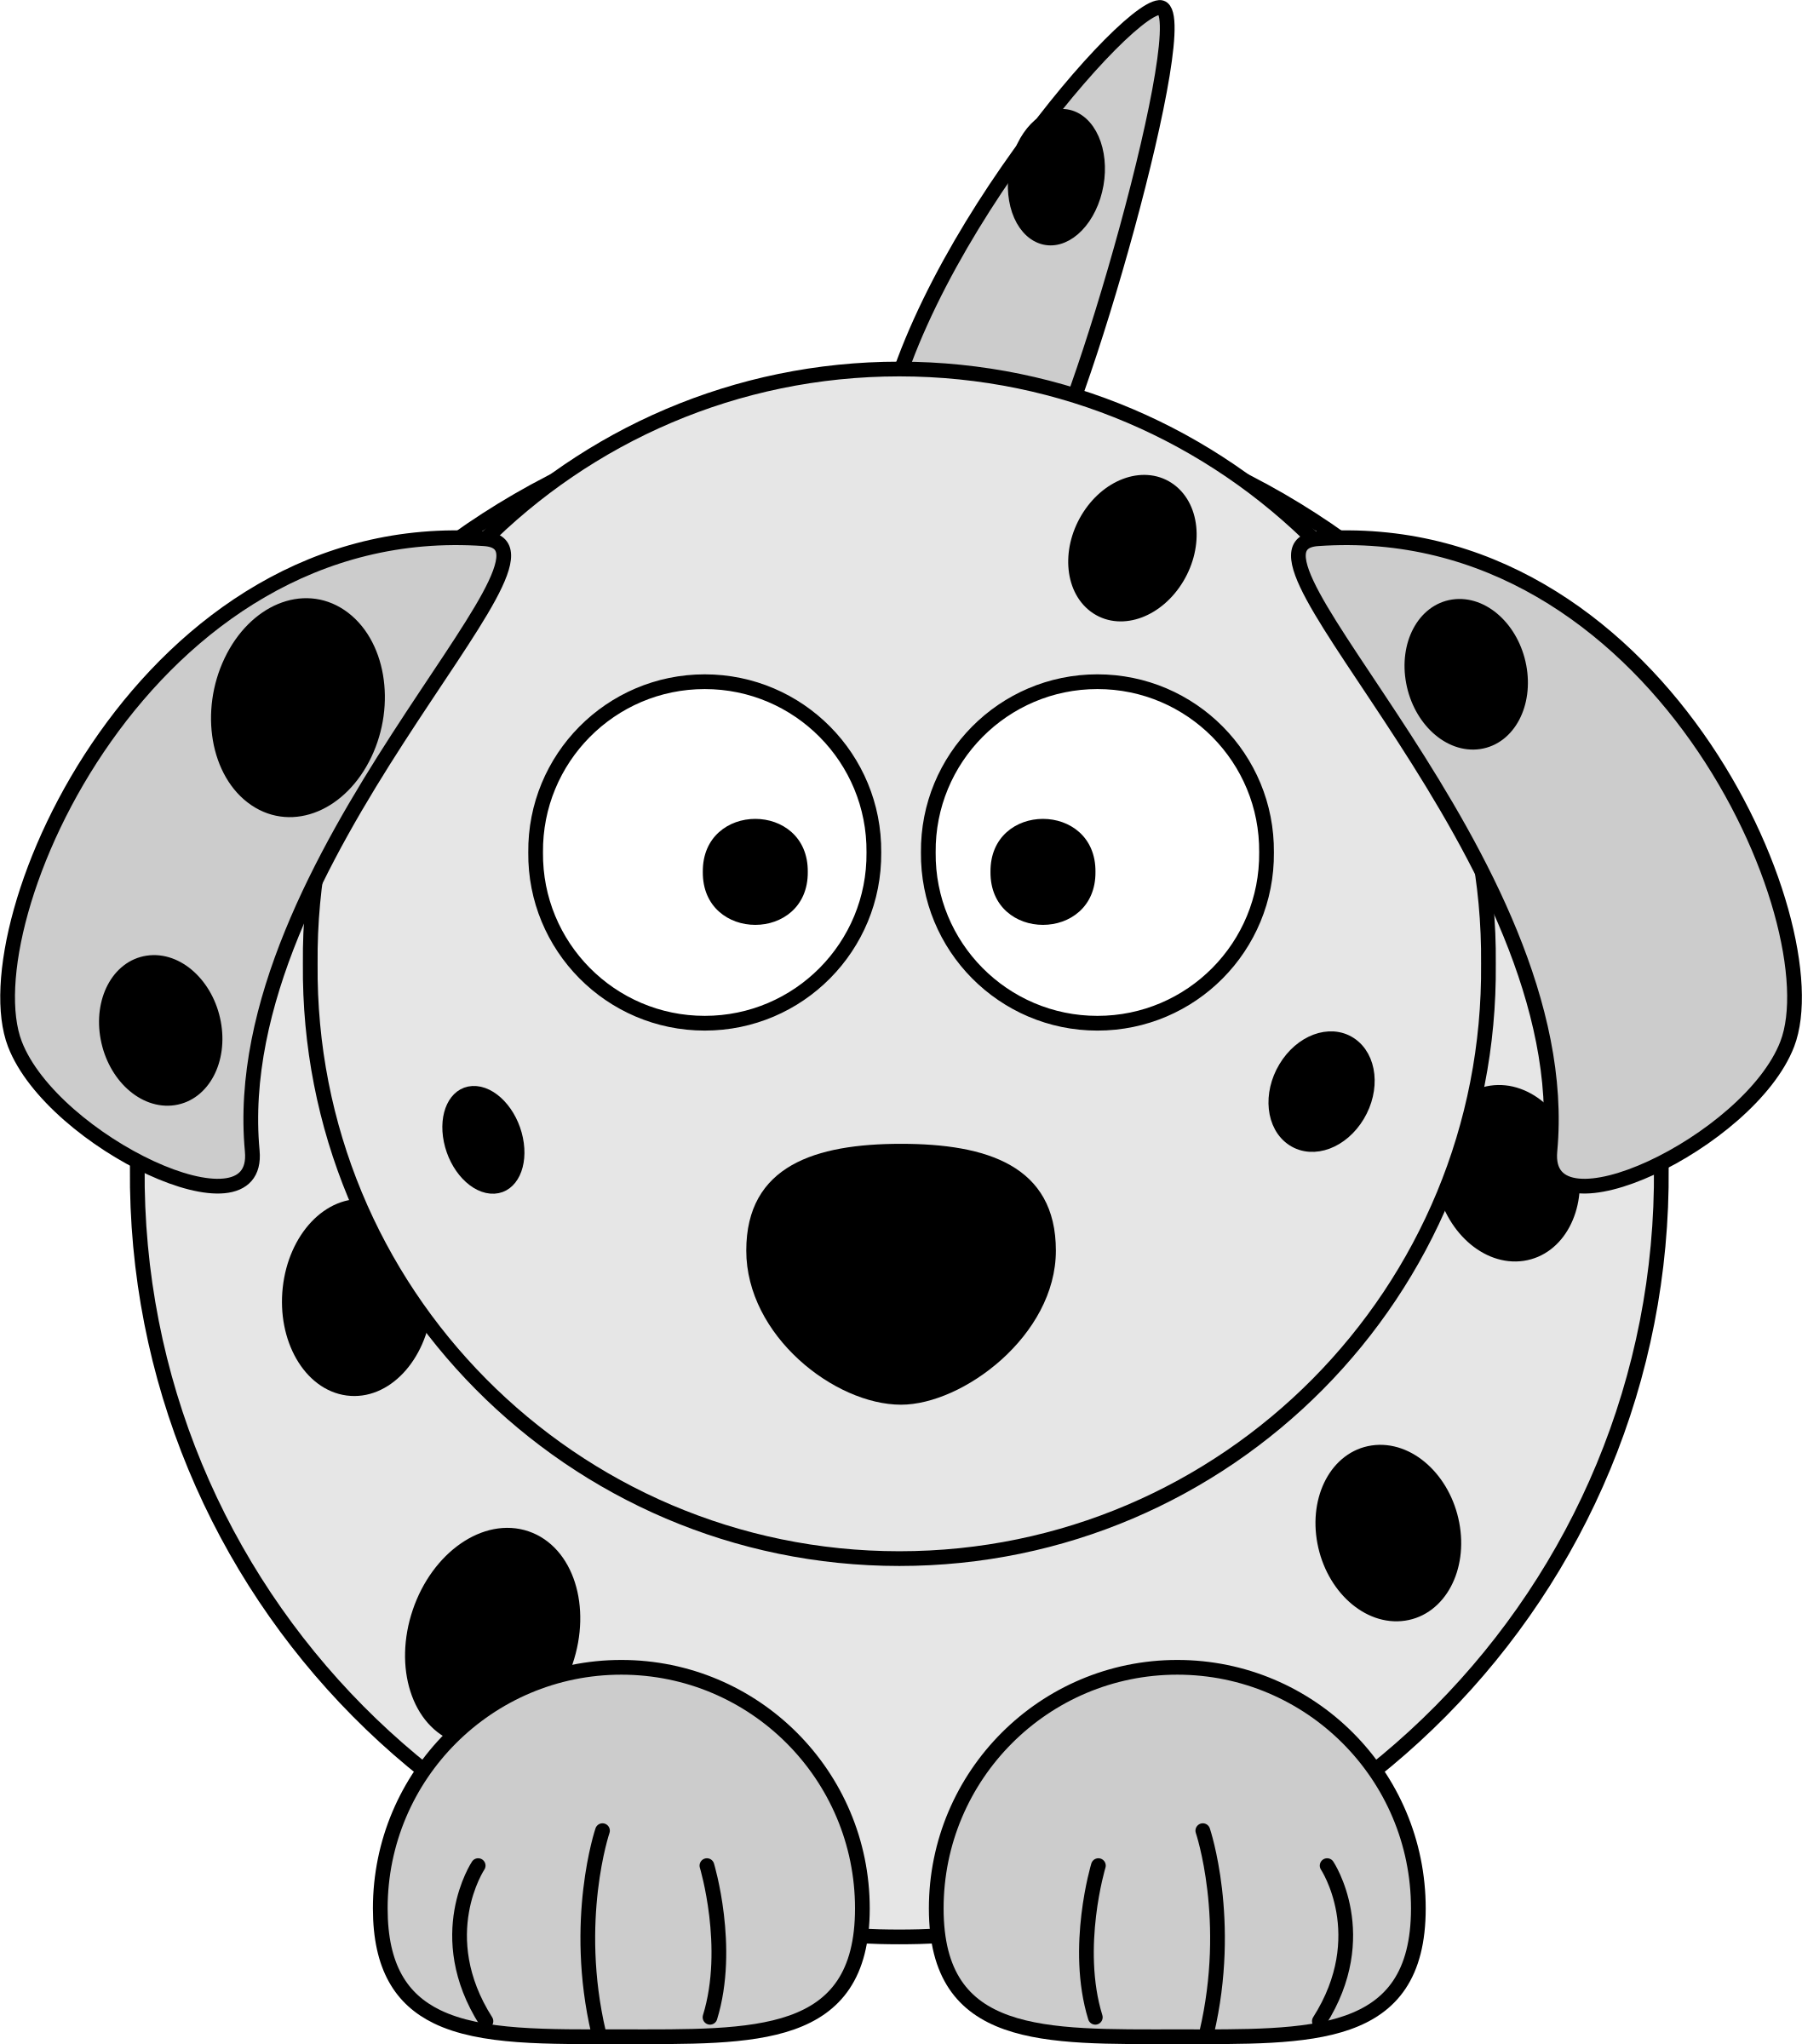 Dalmatian Cartoon Dog by aztlek